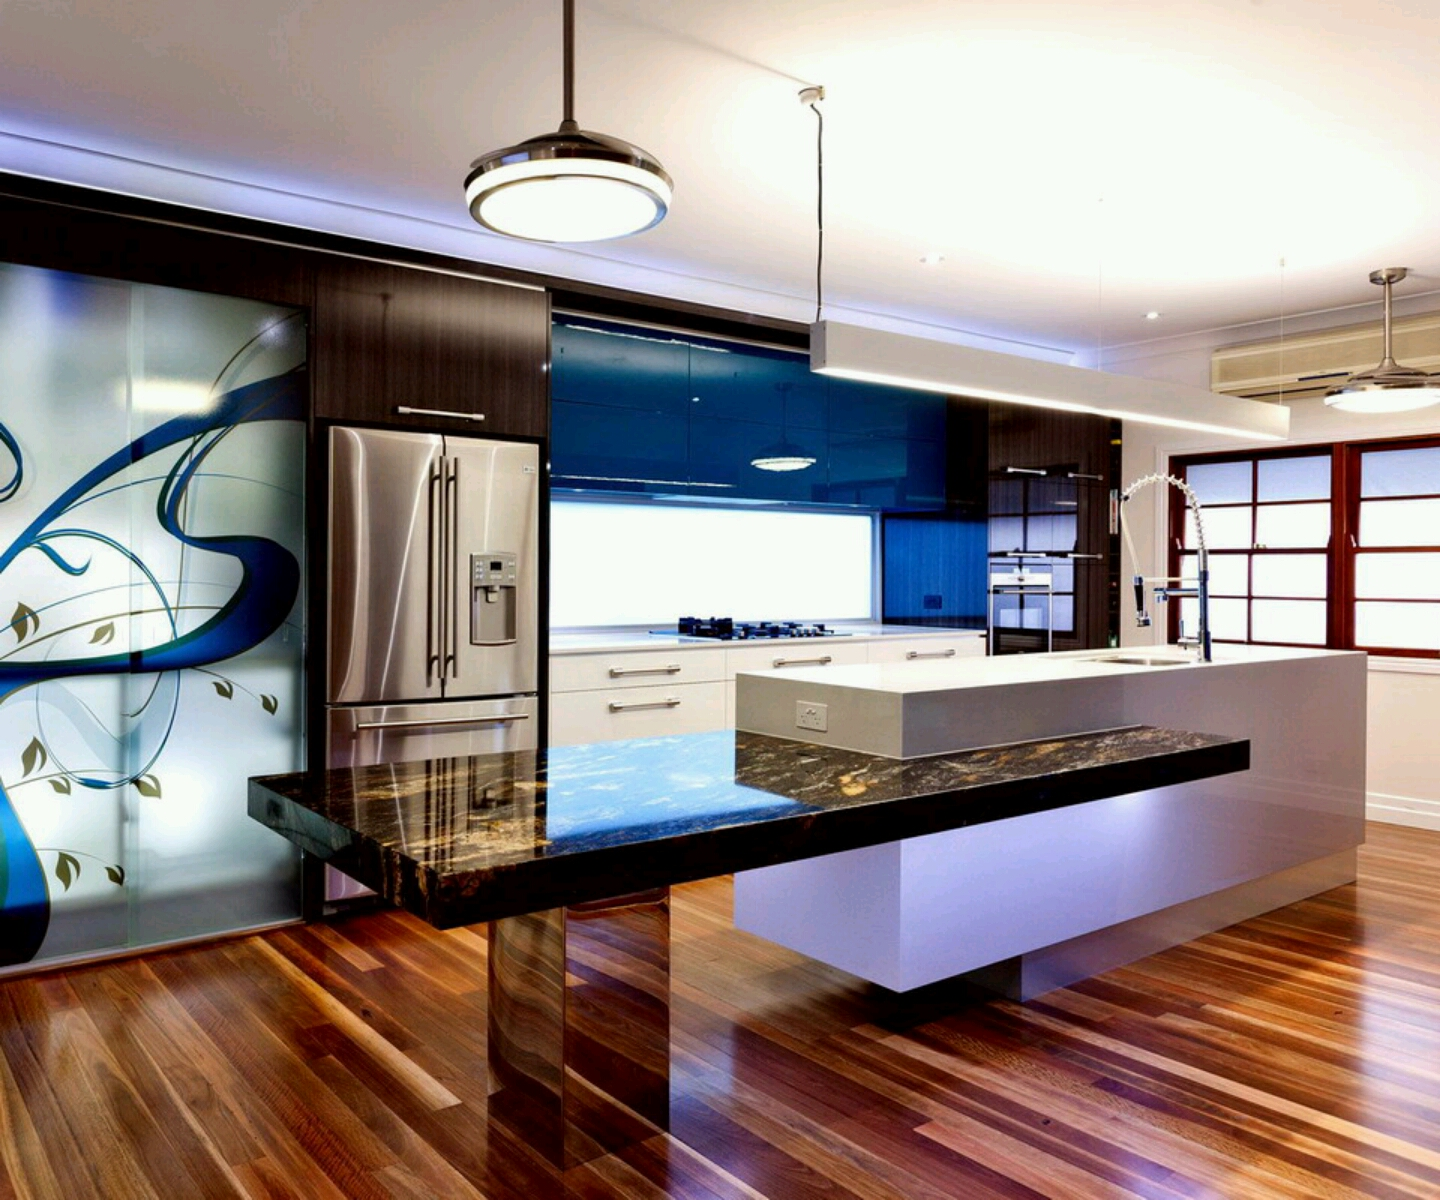 contemporary kitchen ideas ultra modern kitchen designs ideas new contemporary kitchen designs modern design ideas